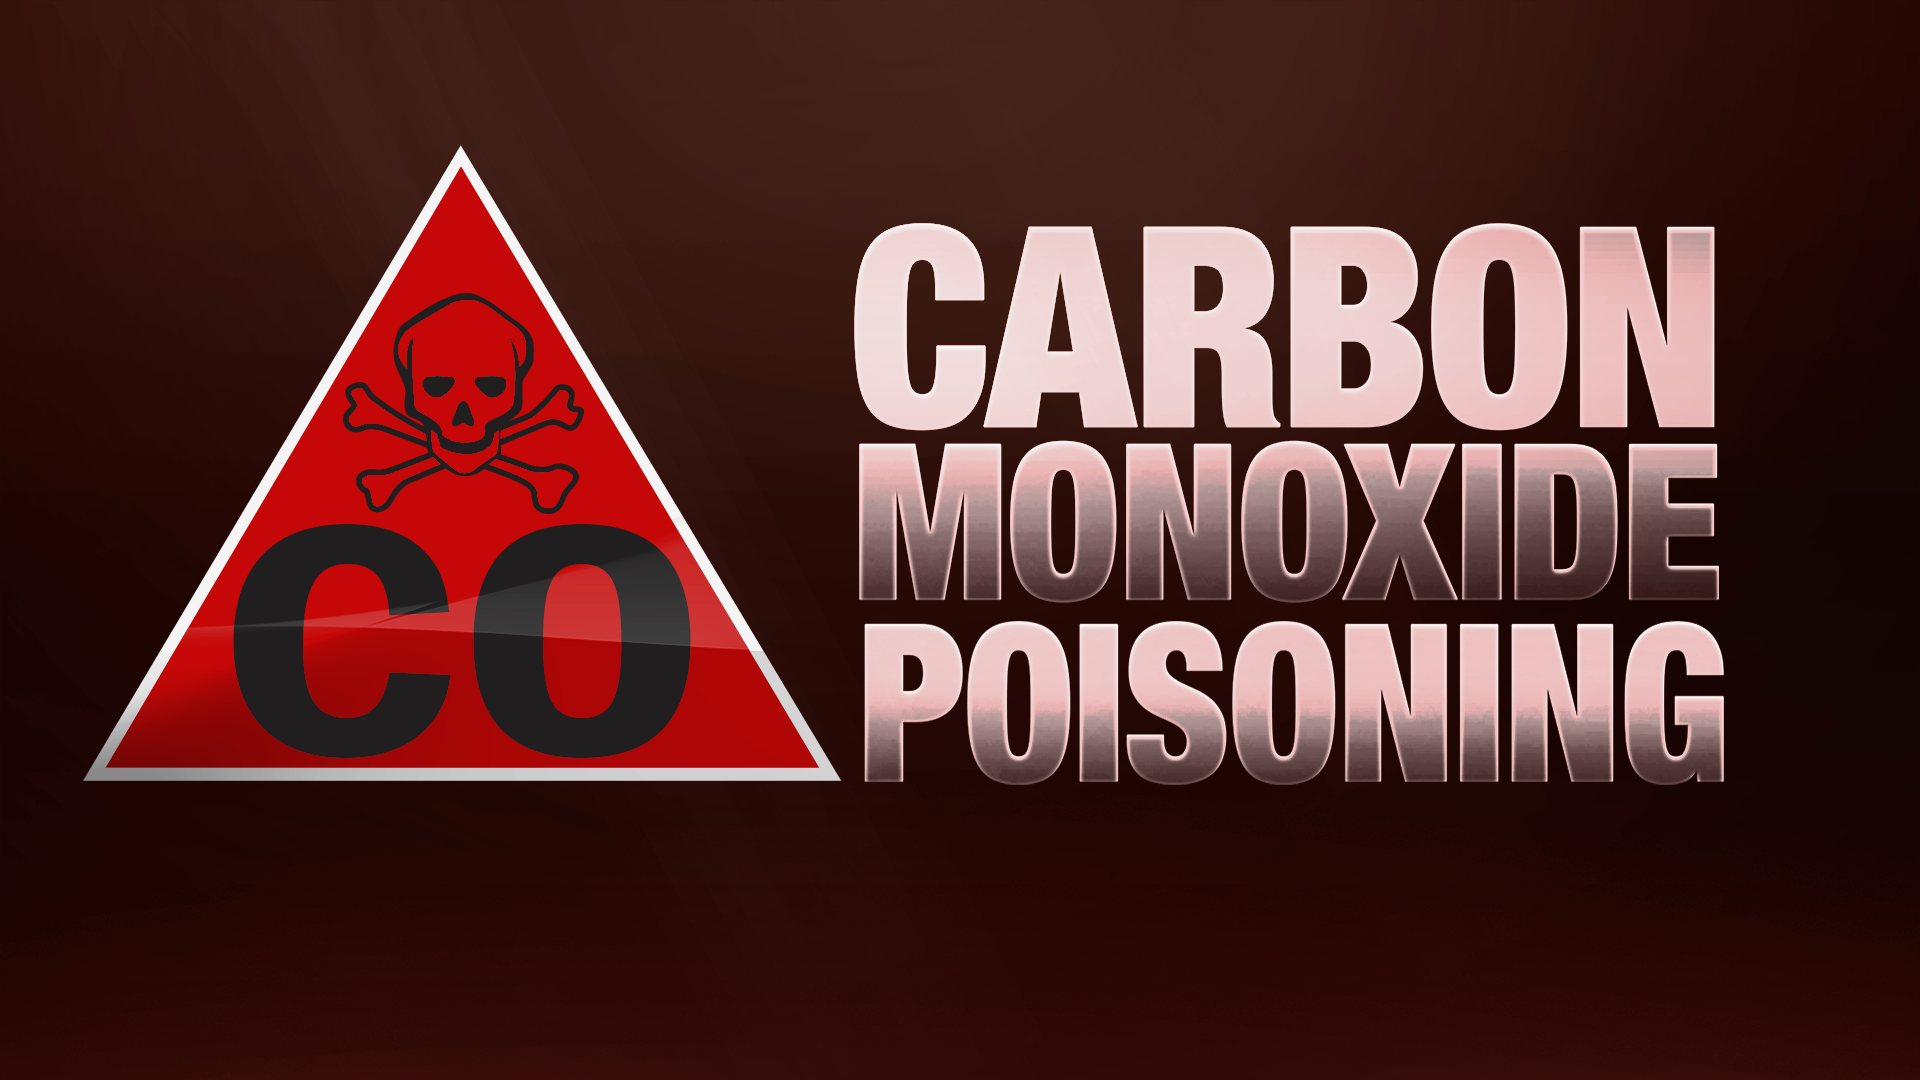 Seven people havebeen hospitalizeddue to high carbon monoxide levels inside their home, authorities say. (AP)